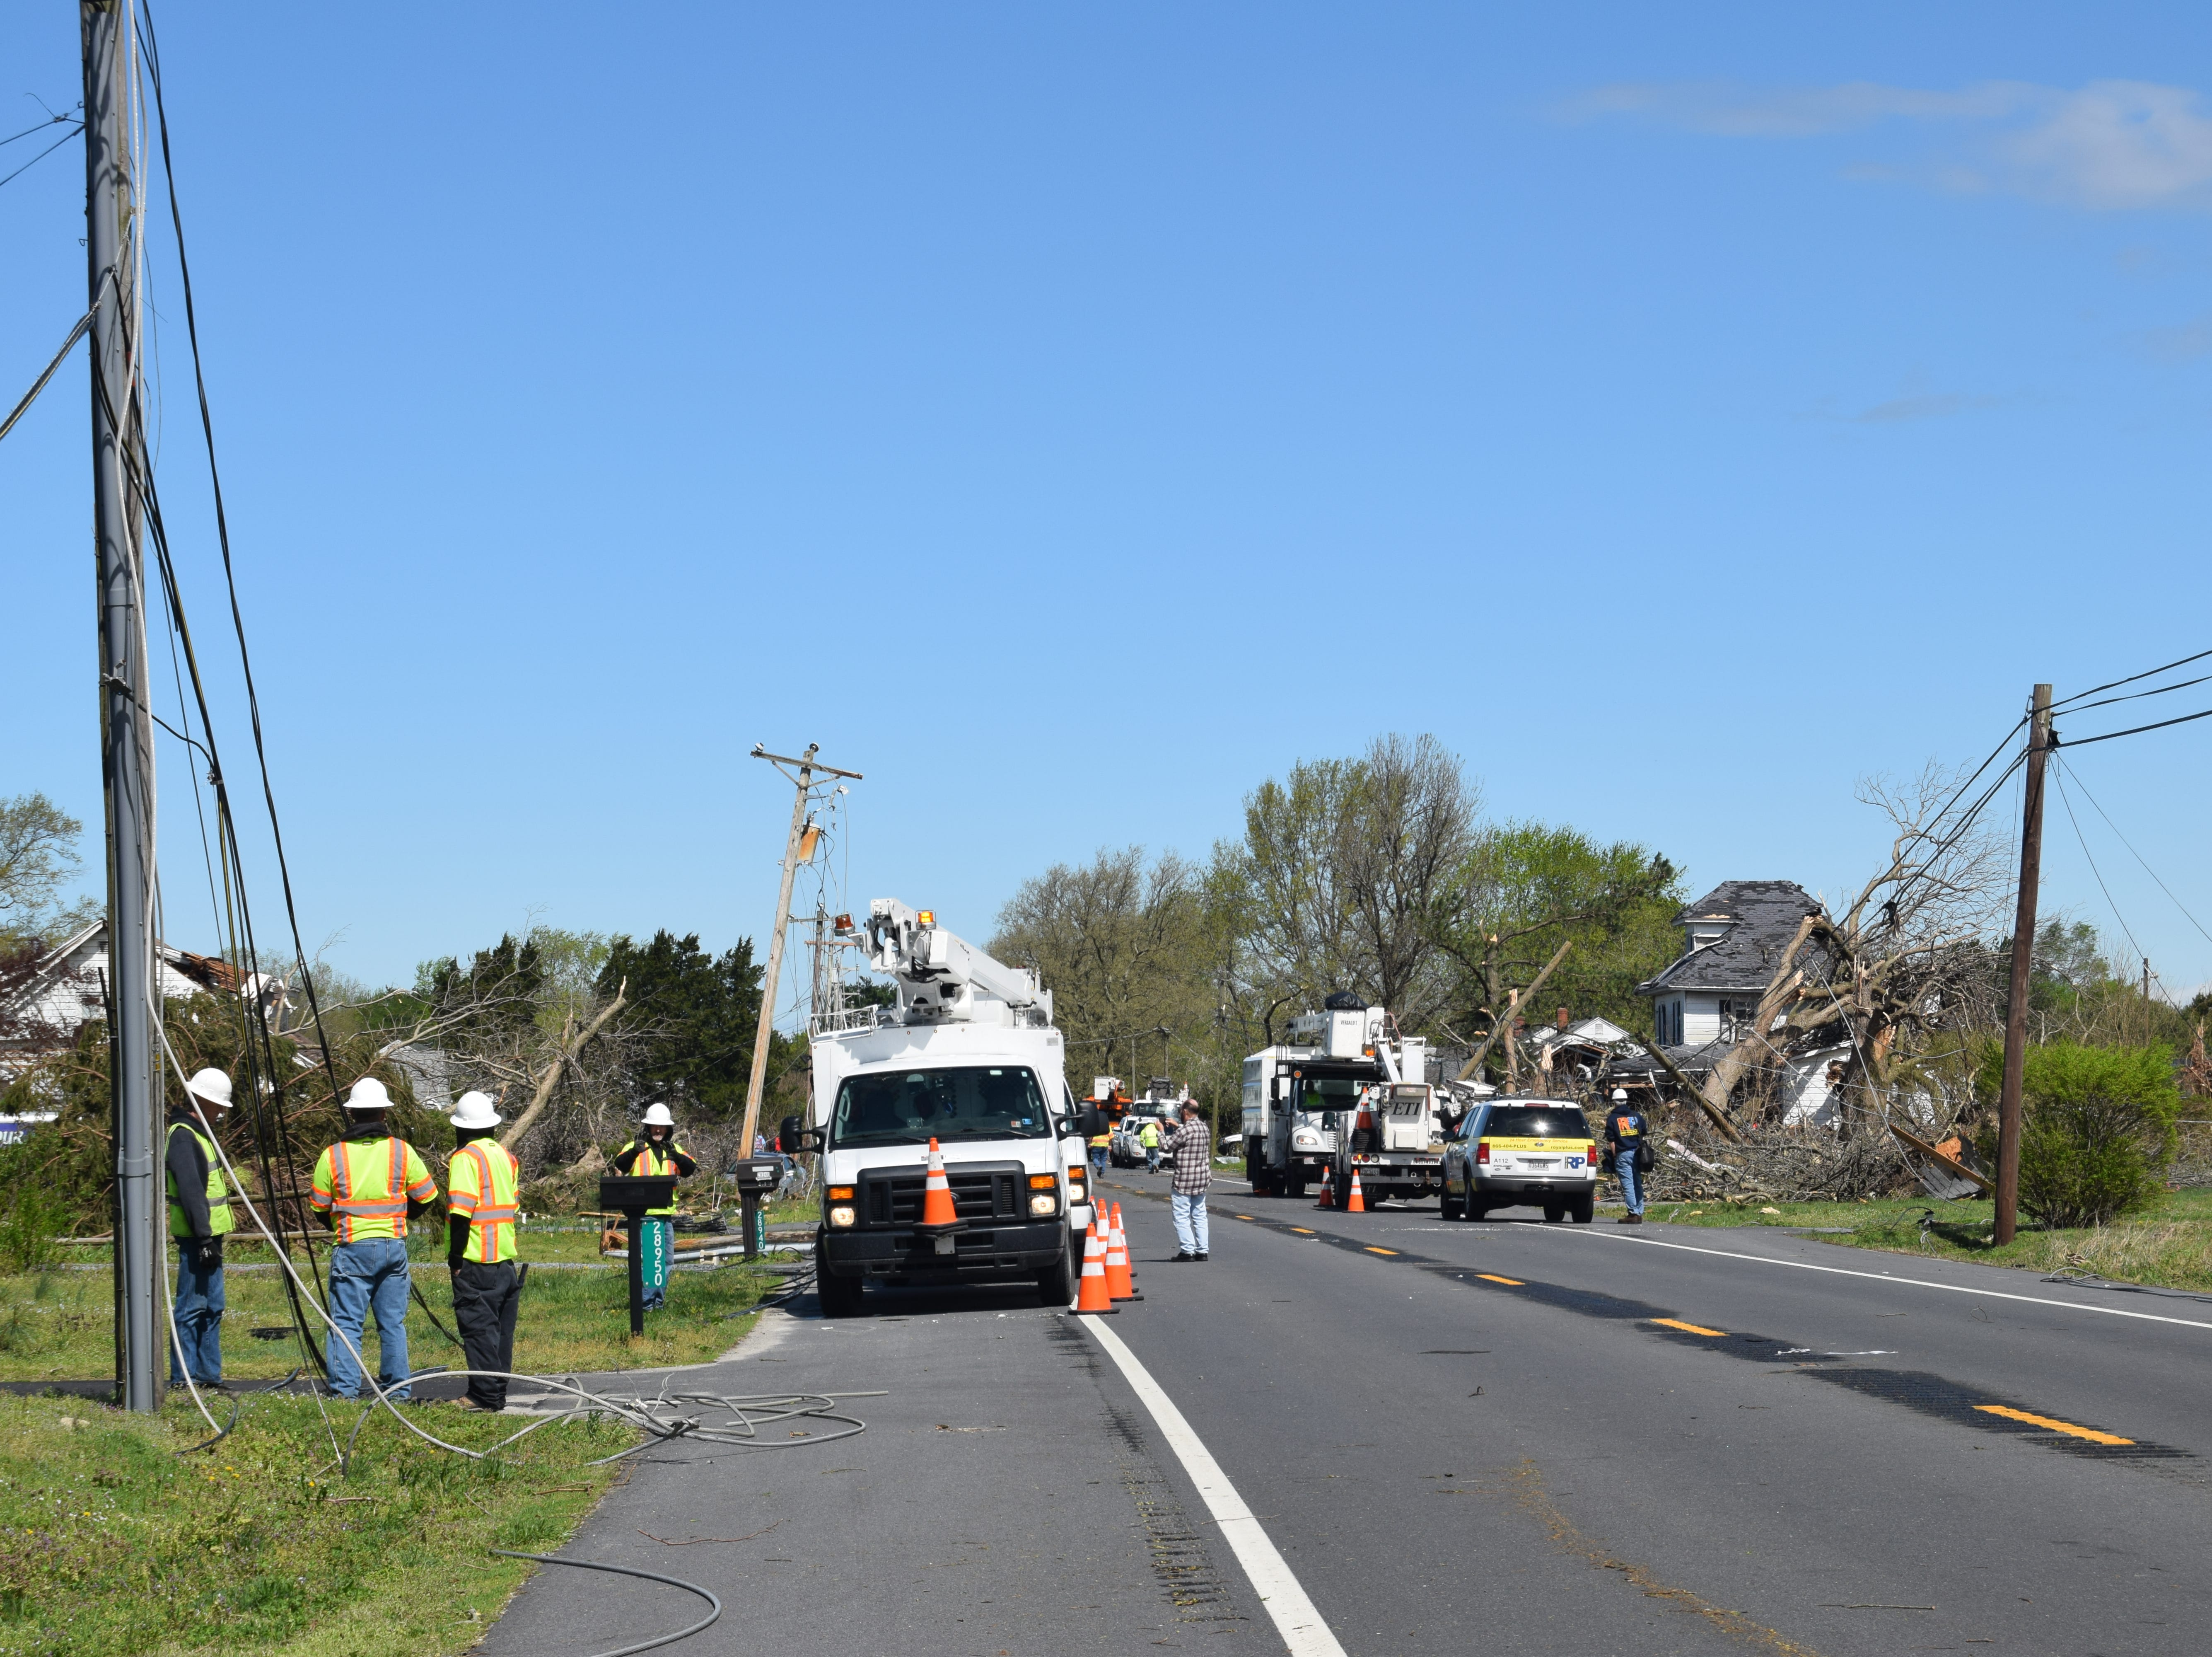 Some of the heaviest storm damage could be found on Seaford Road in Laurel, where crews from multiple agencies and companies worked to clear debris, limbs and downed power lines on Monday.